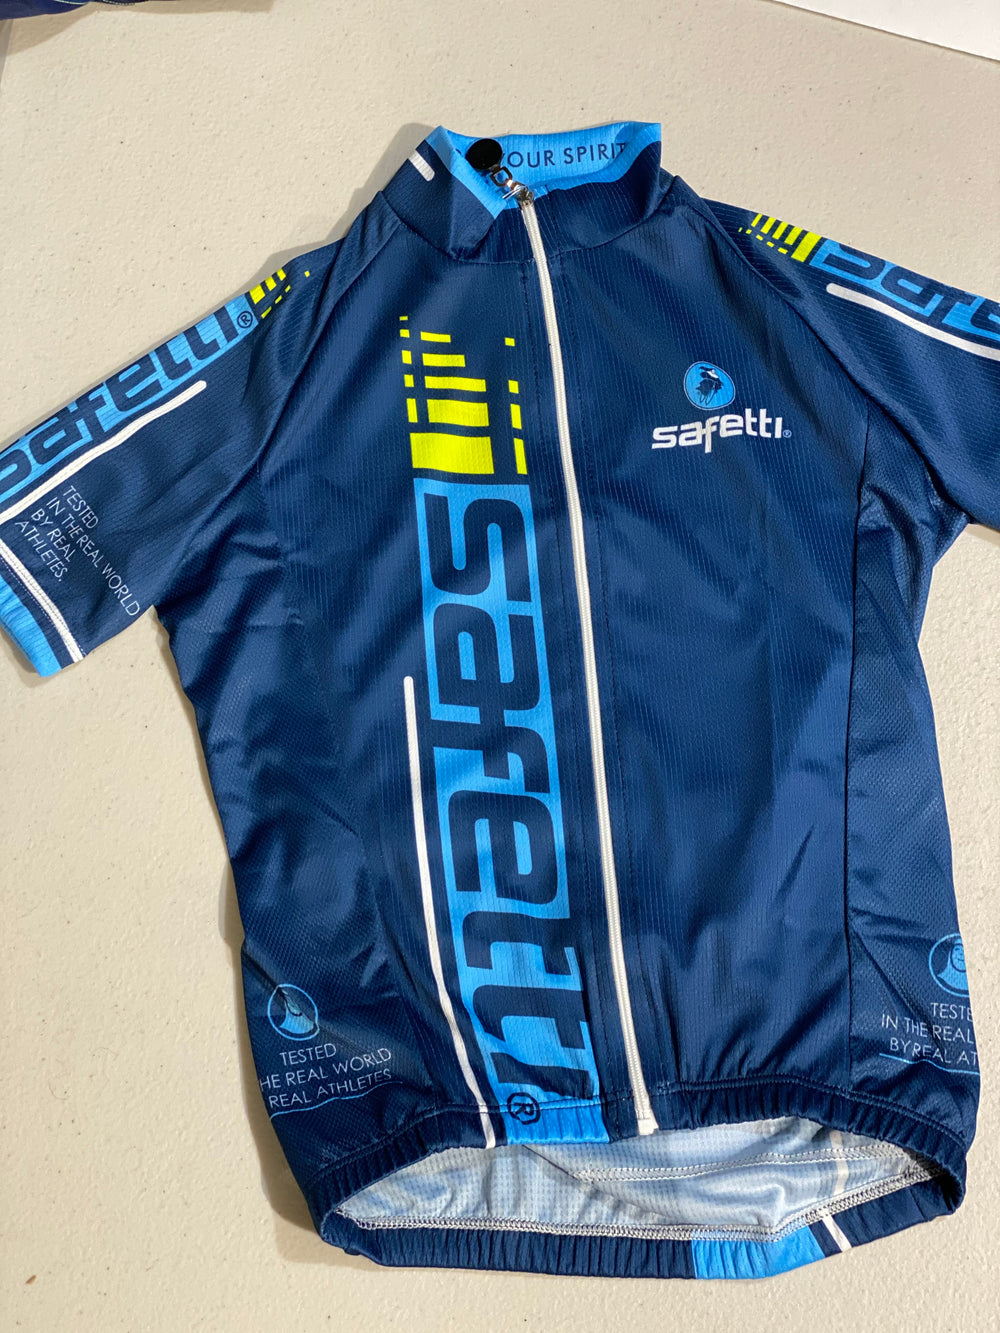 GREAT DEAL DON'T MISS IT - Safetti Retro Cycling Kit. Dark Blue. Junior